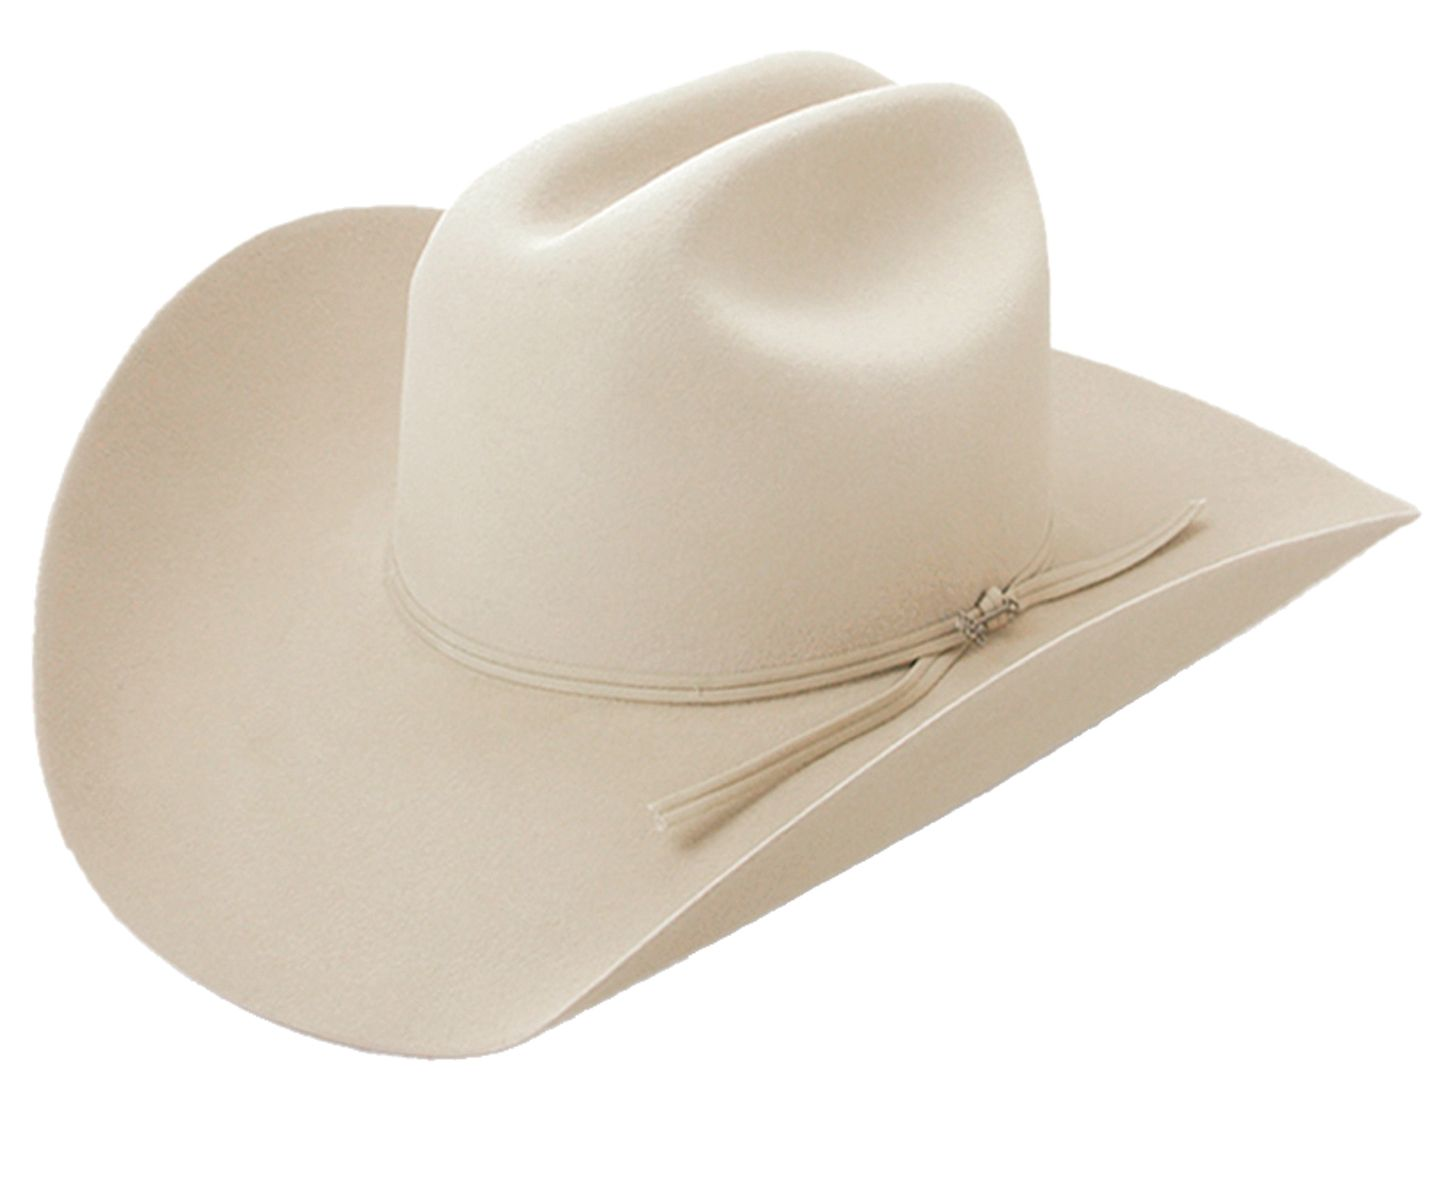 Stetson Hat Latest 2014 Designs Collection For Men And Women